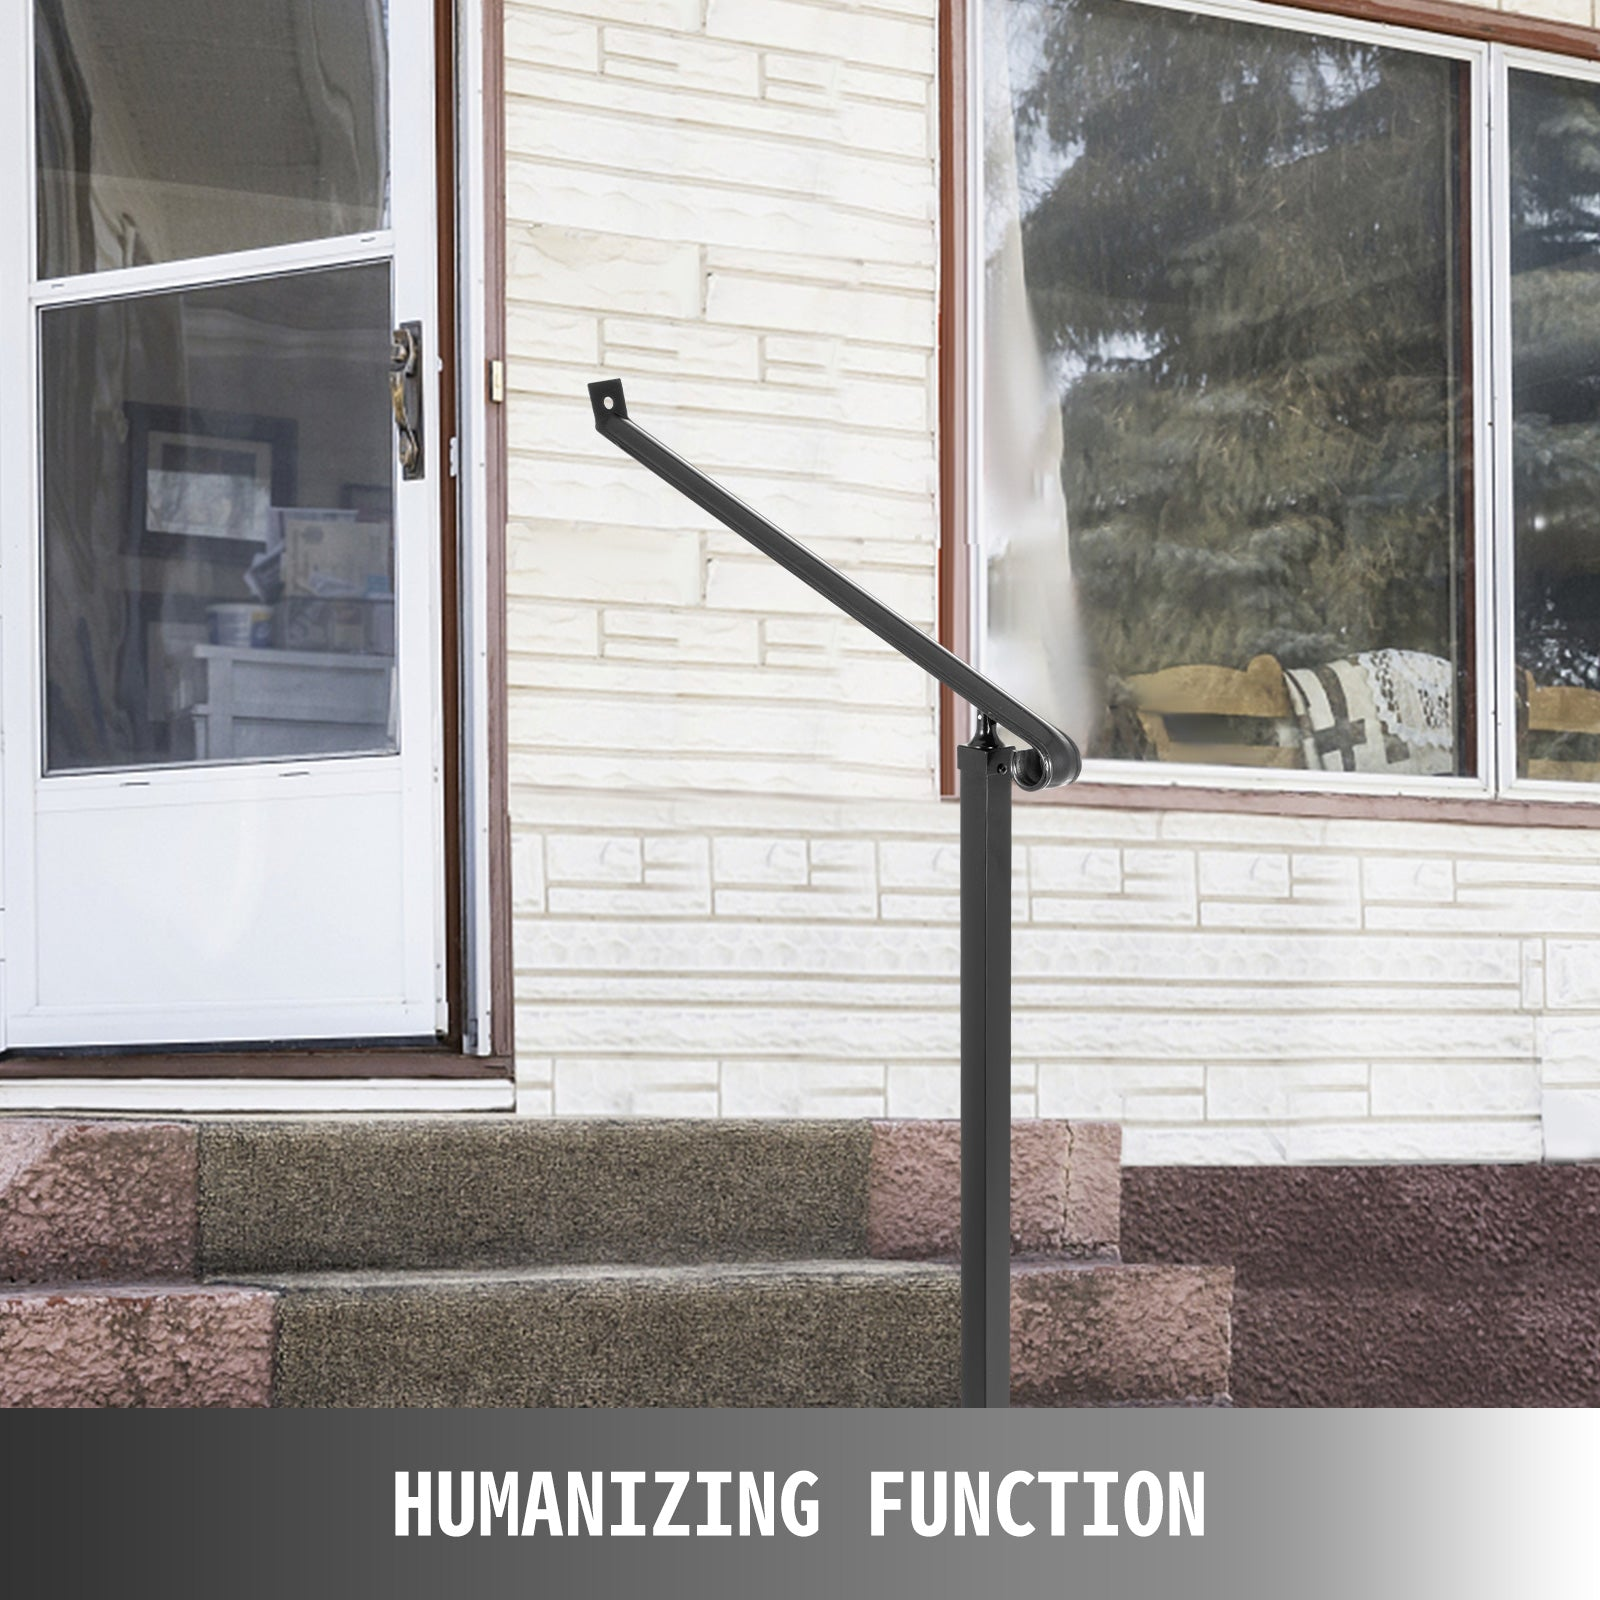 Iron Handrailrailings For Steps2 Steps Iron Handrails For Outdoor Steps